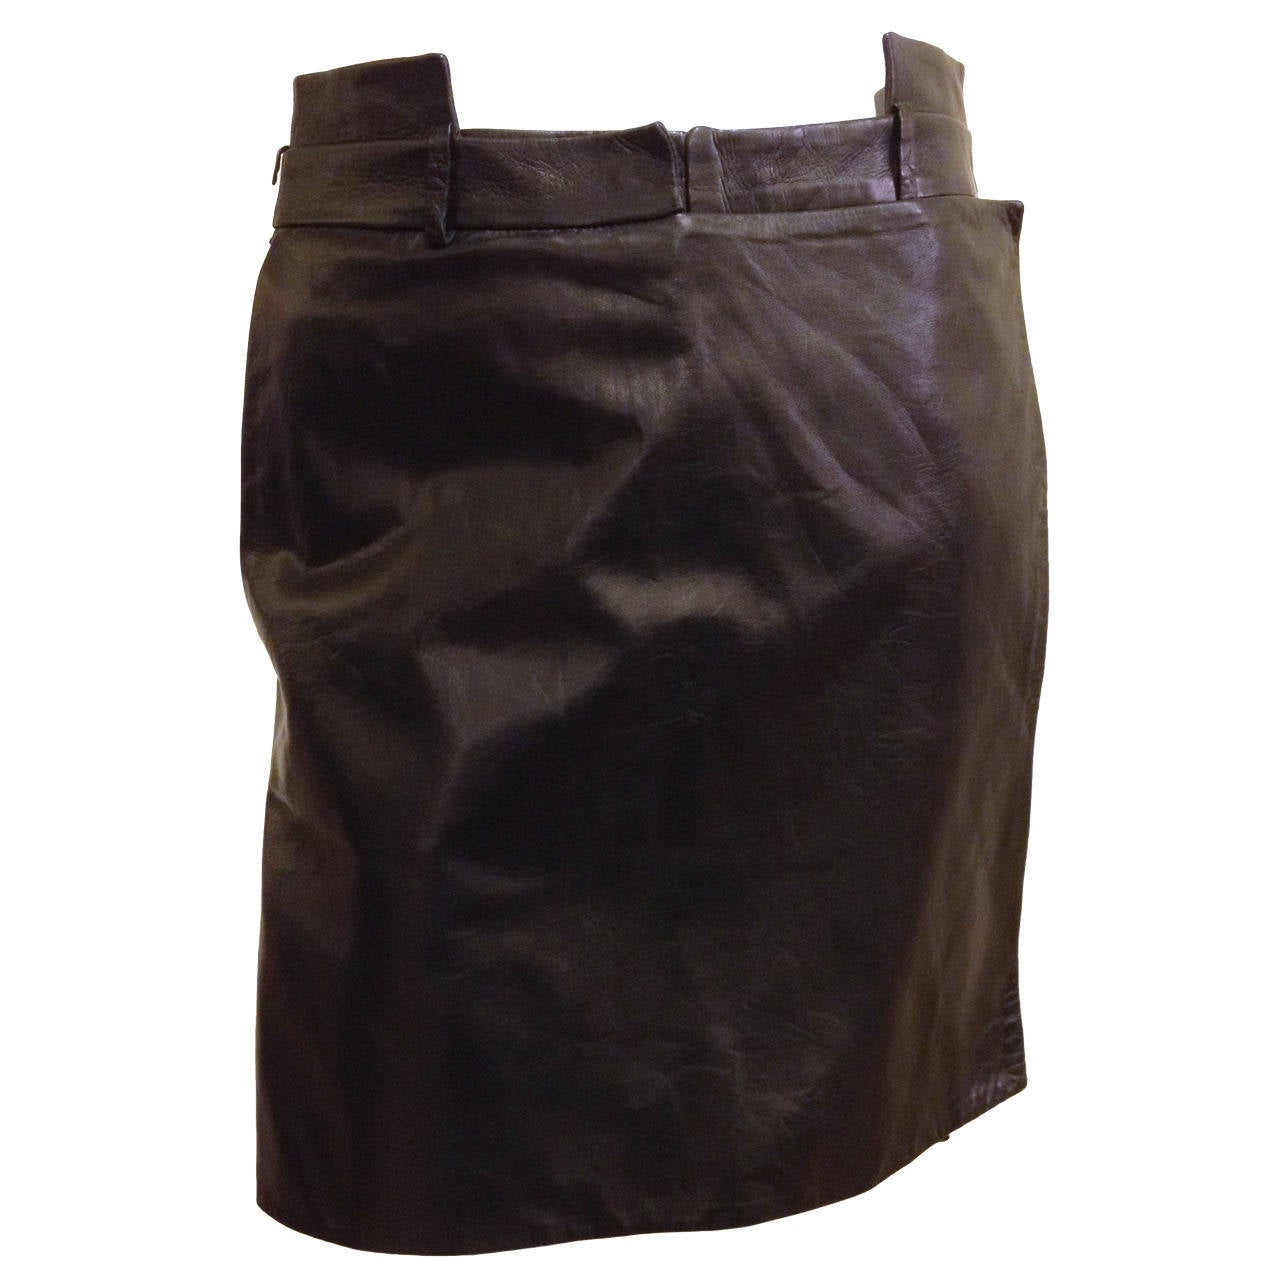 Givenchy Black Leather Skort